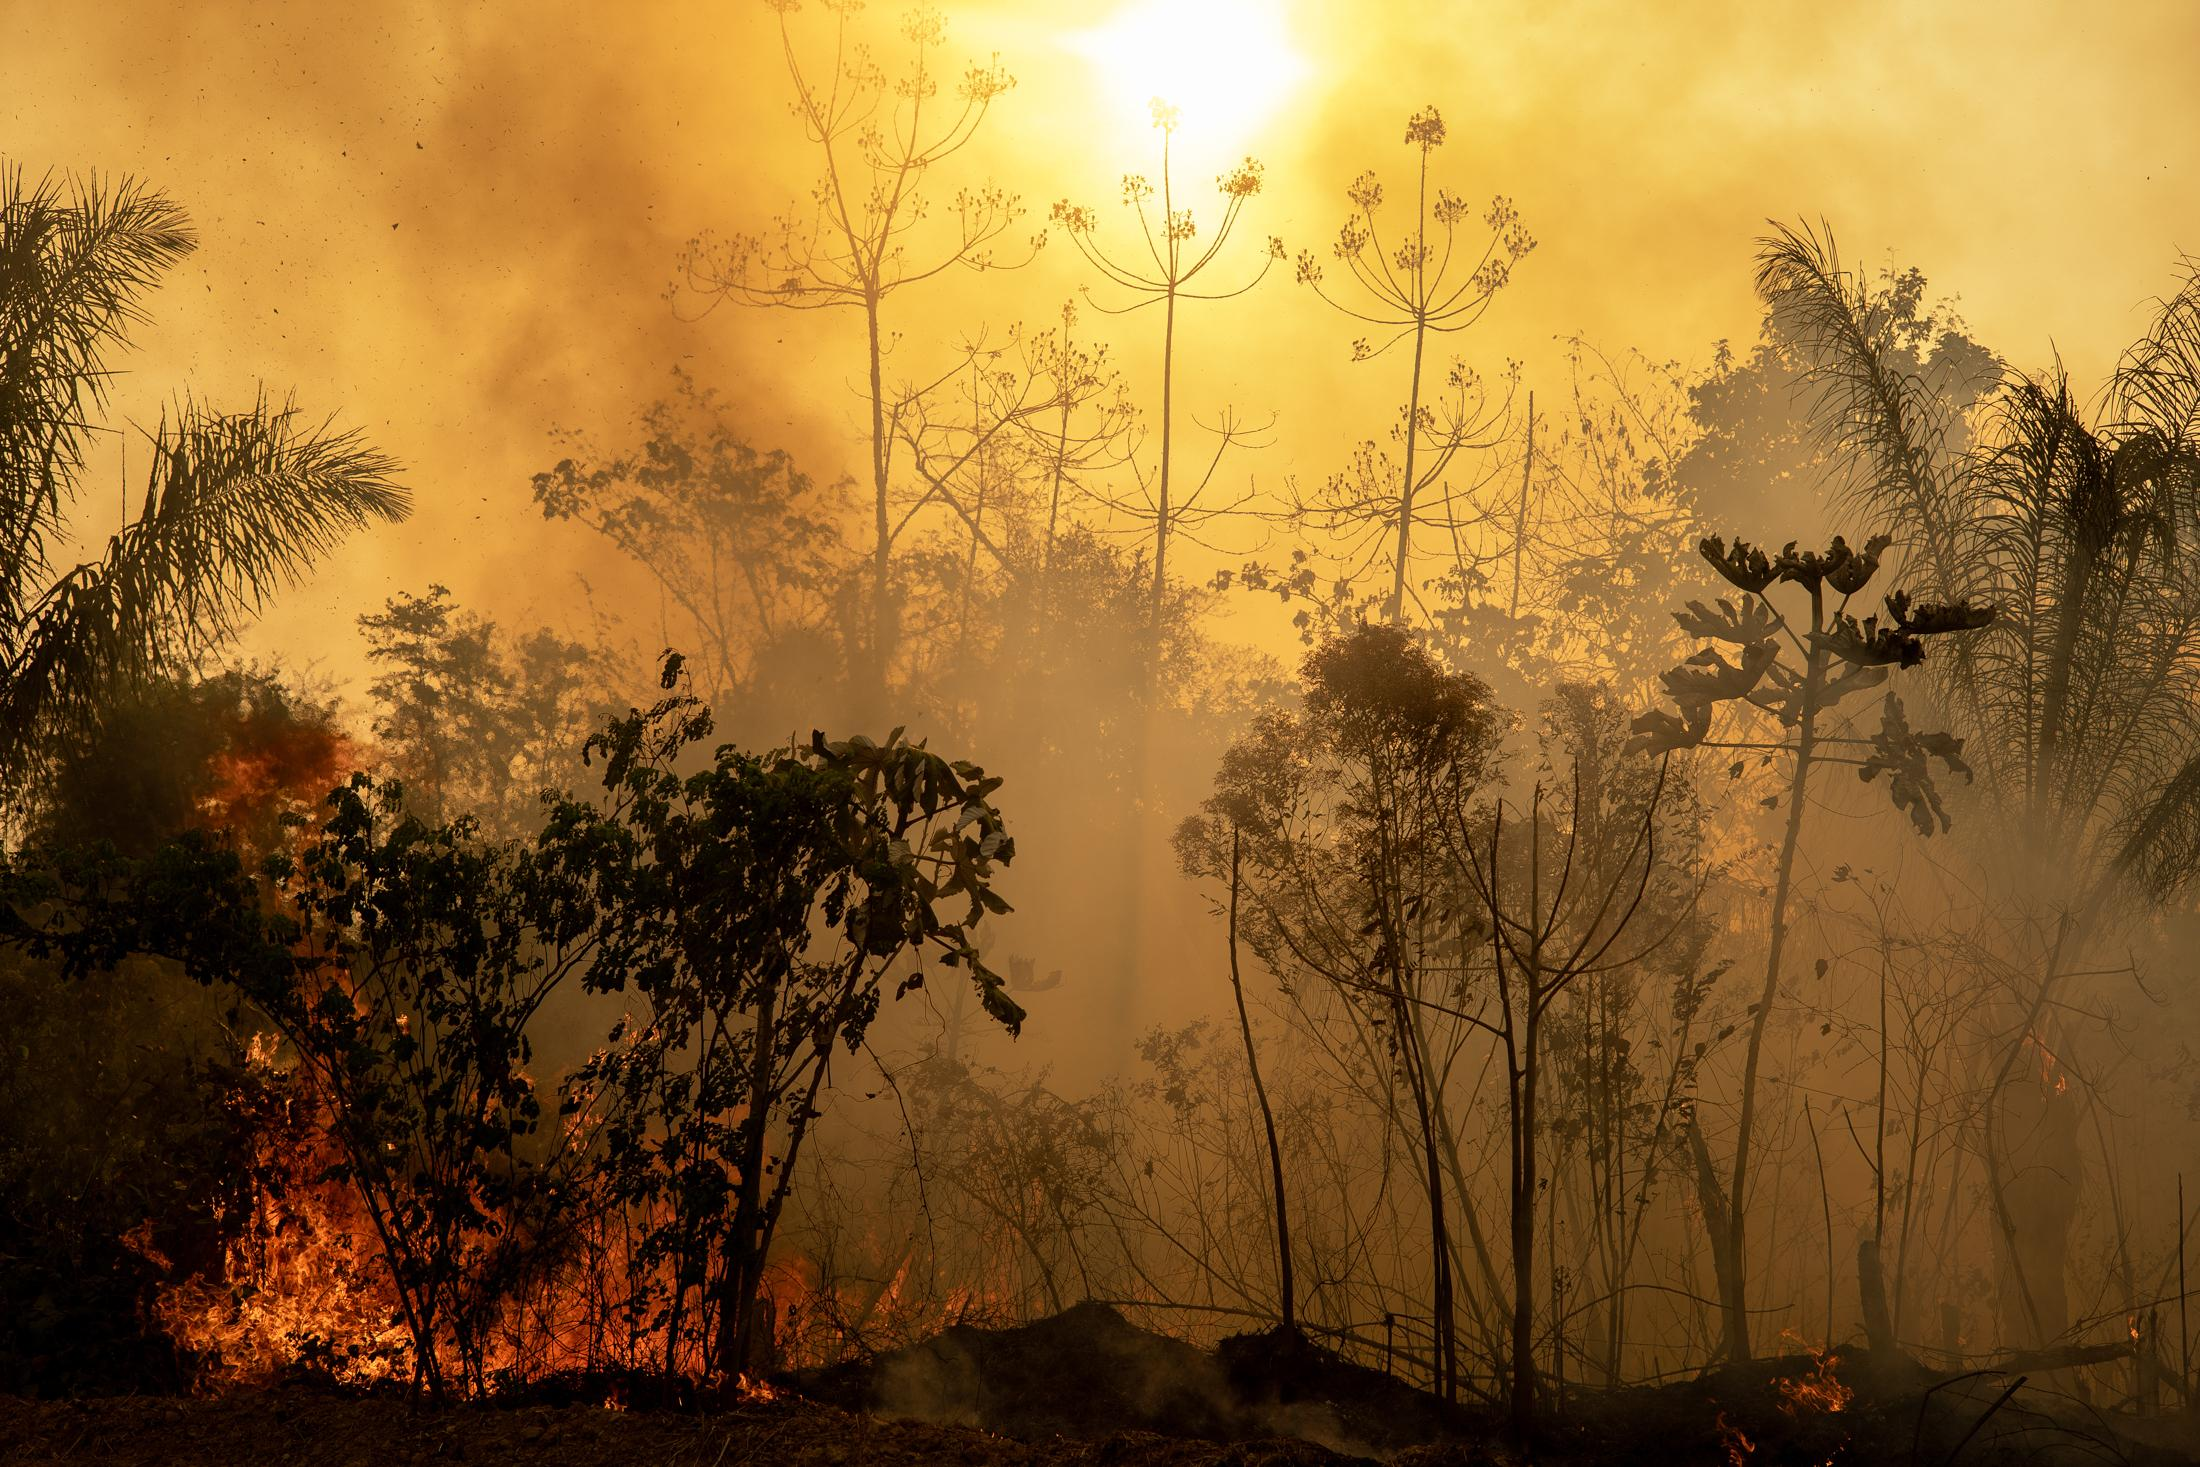 Burning Amazon rainforest area.